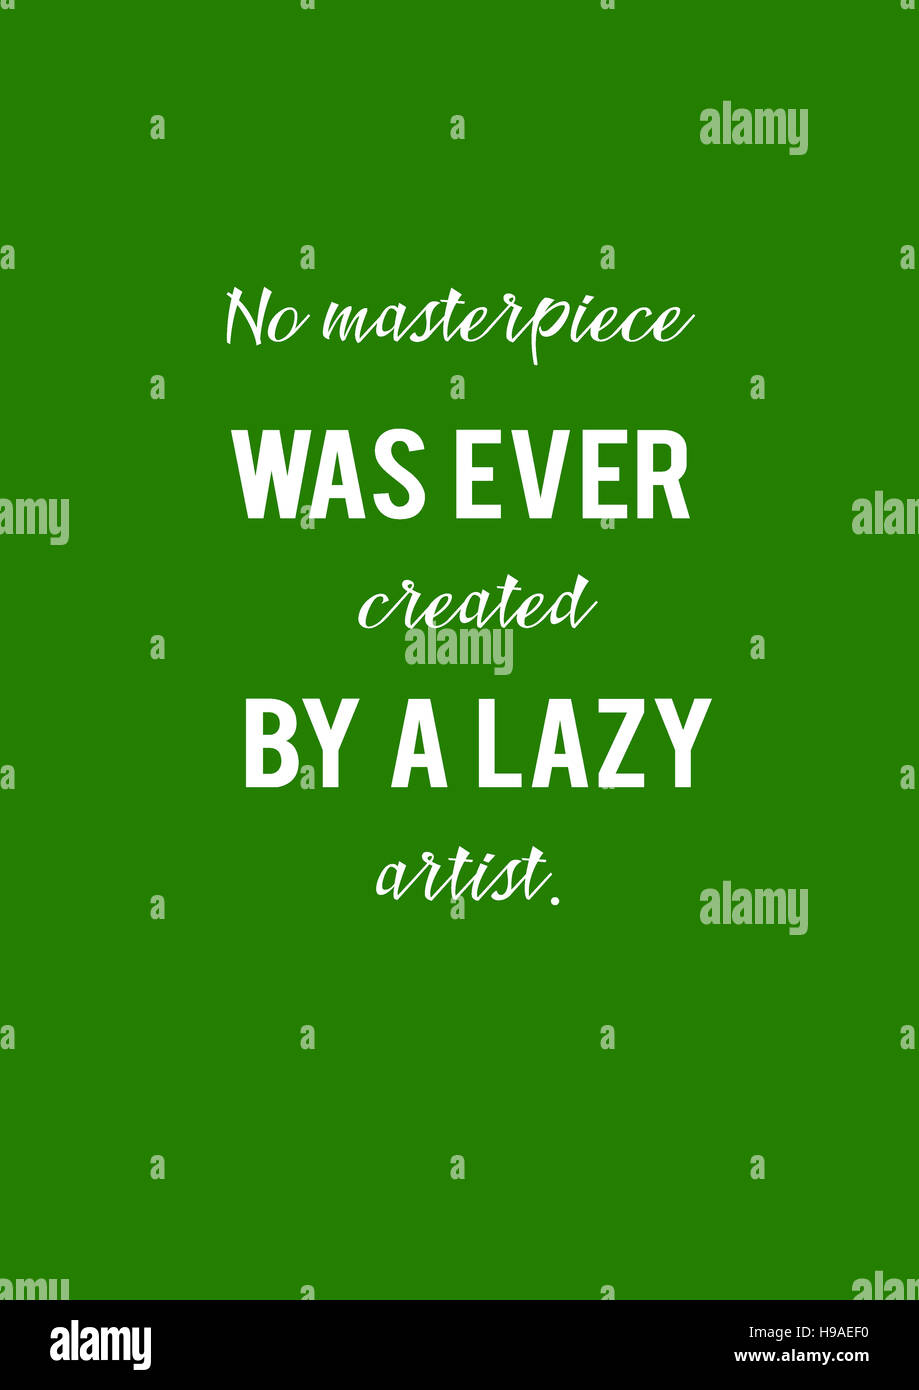 'No masterpiece was ever created by a lazy artist.' illustration Motivation, poster, quote, background, - Stock Image